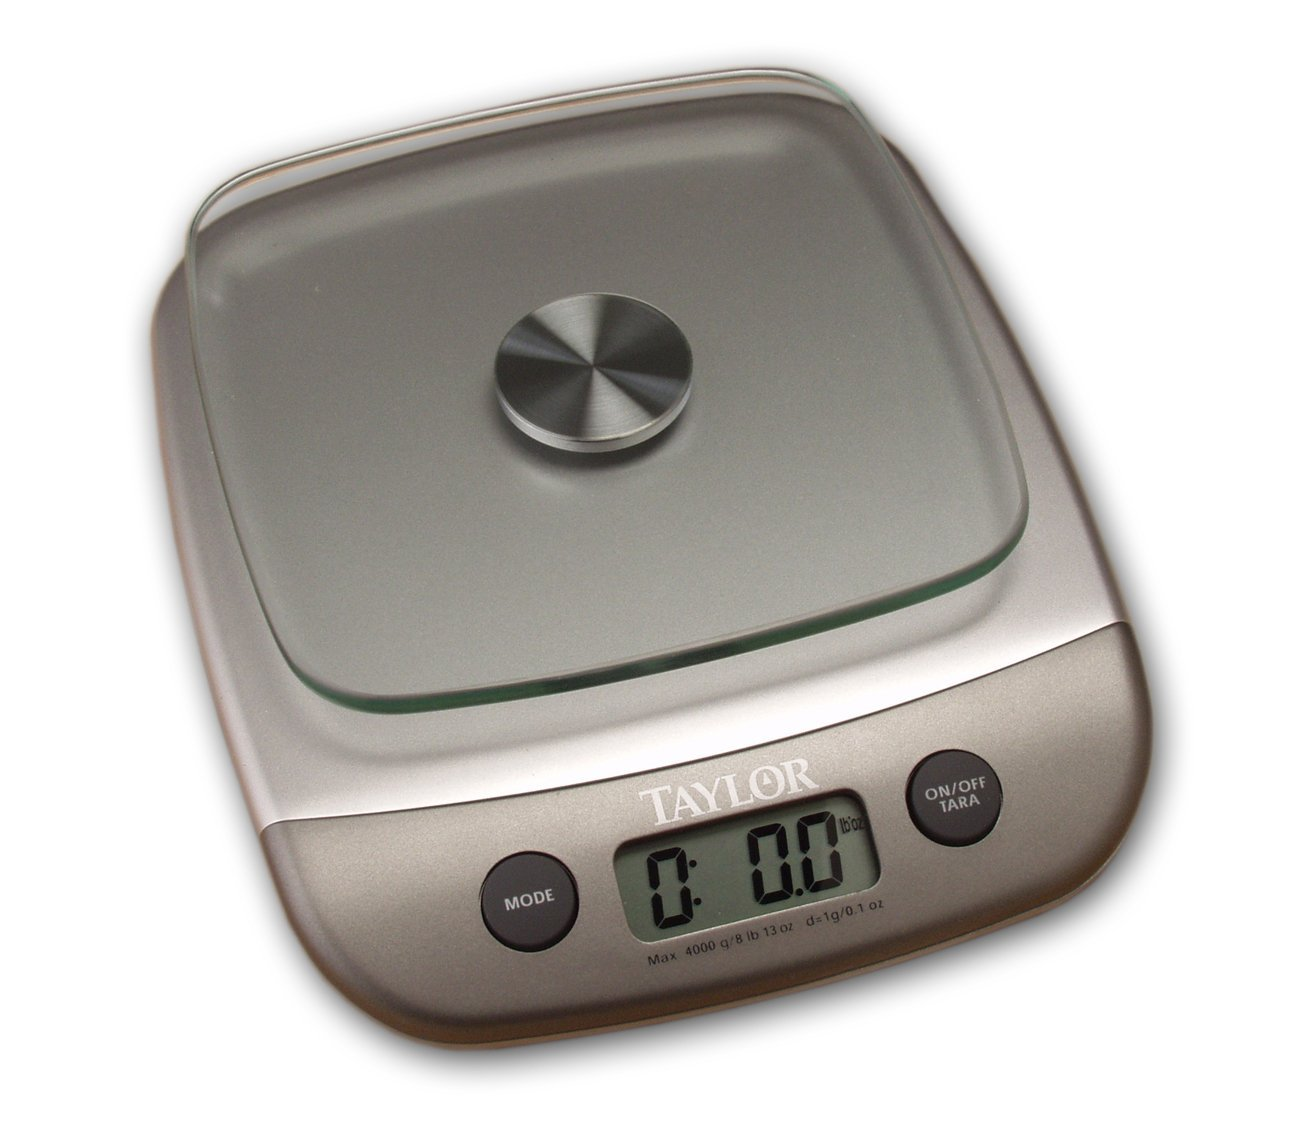 Details about Taylor Kitchen Scale - Silver (8 lb.) , New, Free Shipping